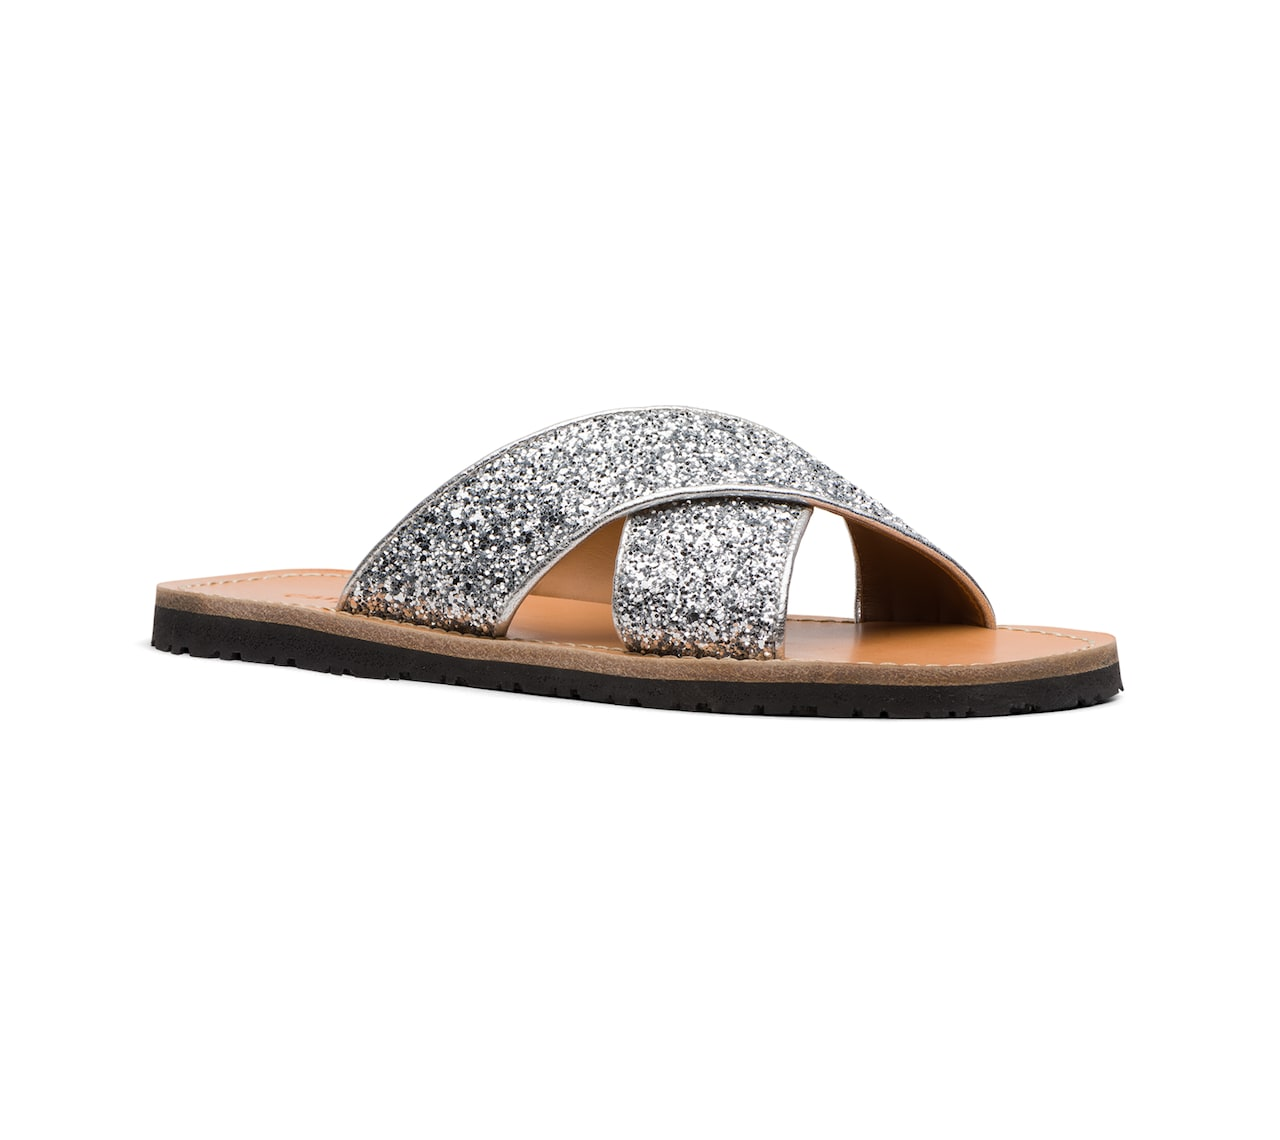 SANDALS IN GLITTER AND LEATHER GOLD/SILVER